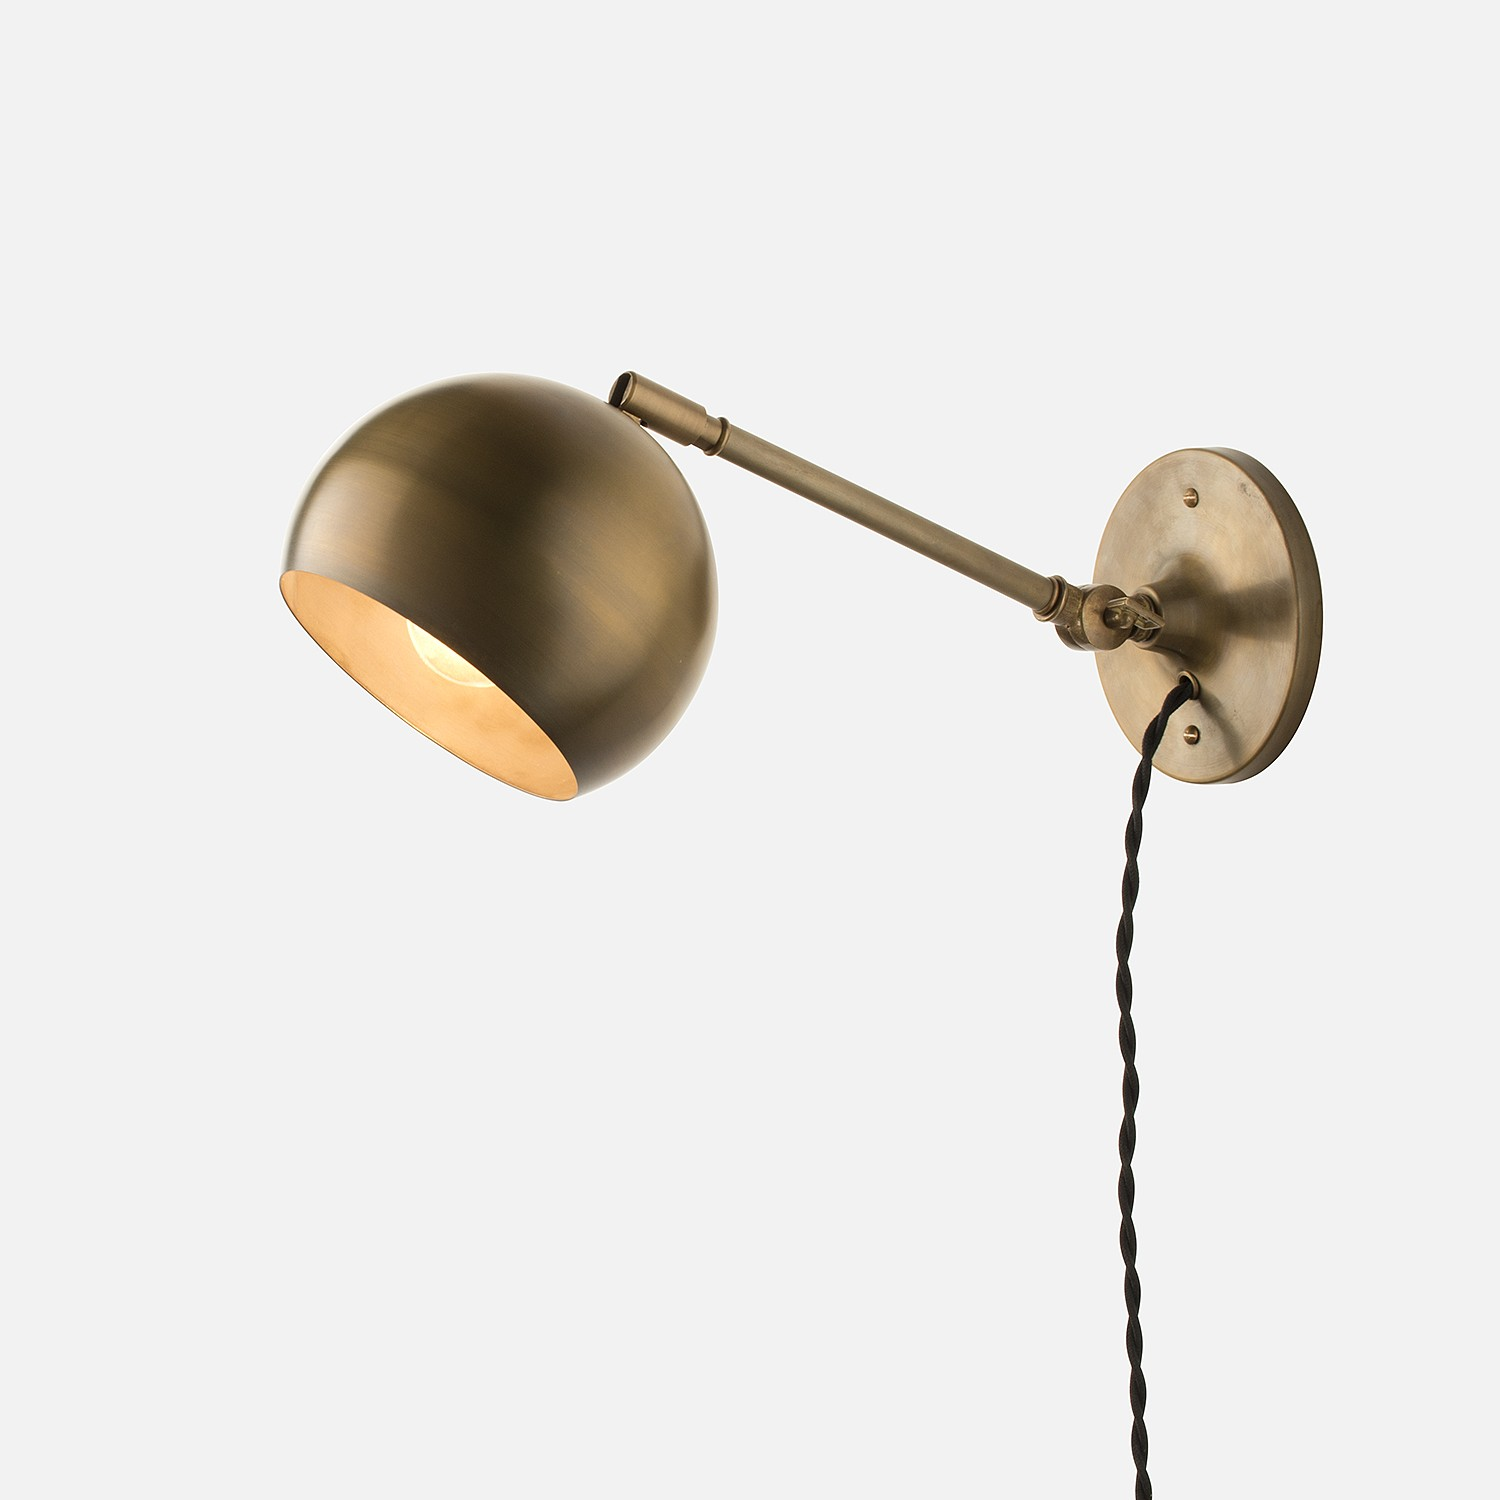 A little practical guide by Plug in sconce wall light ... on Plugin Wall Sconce Lights id=73889